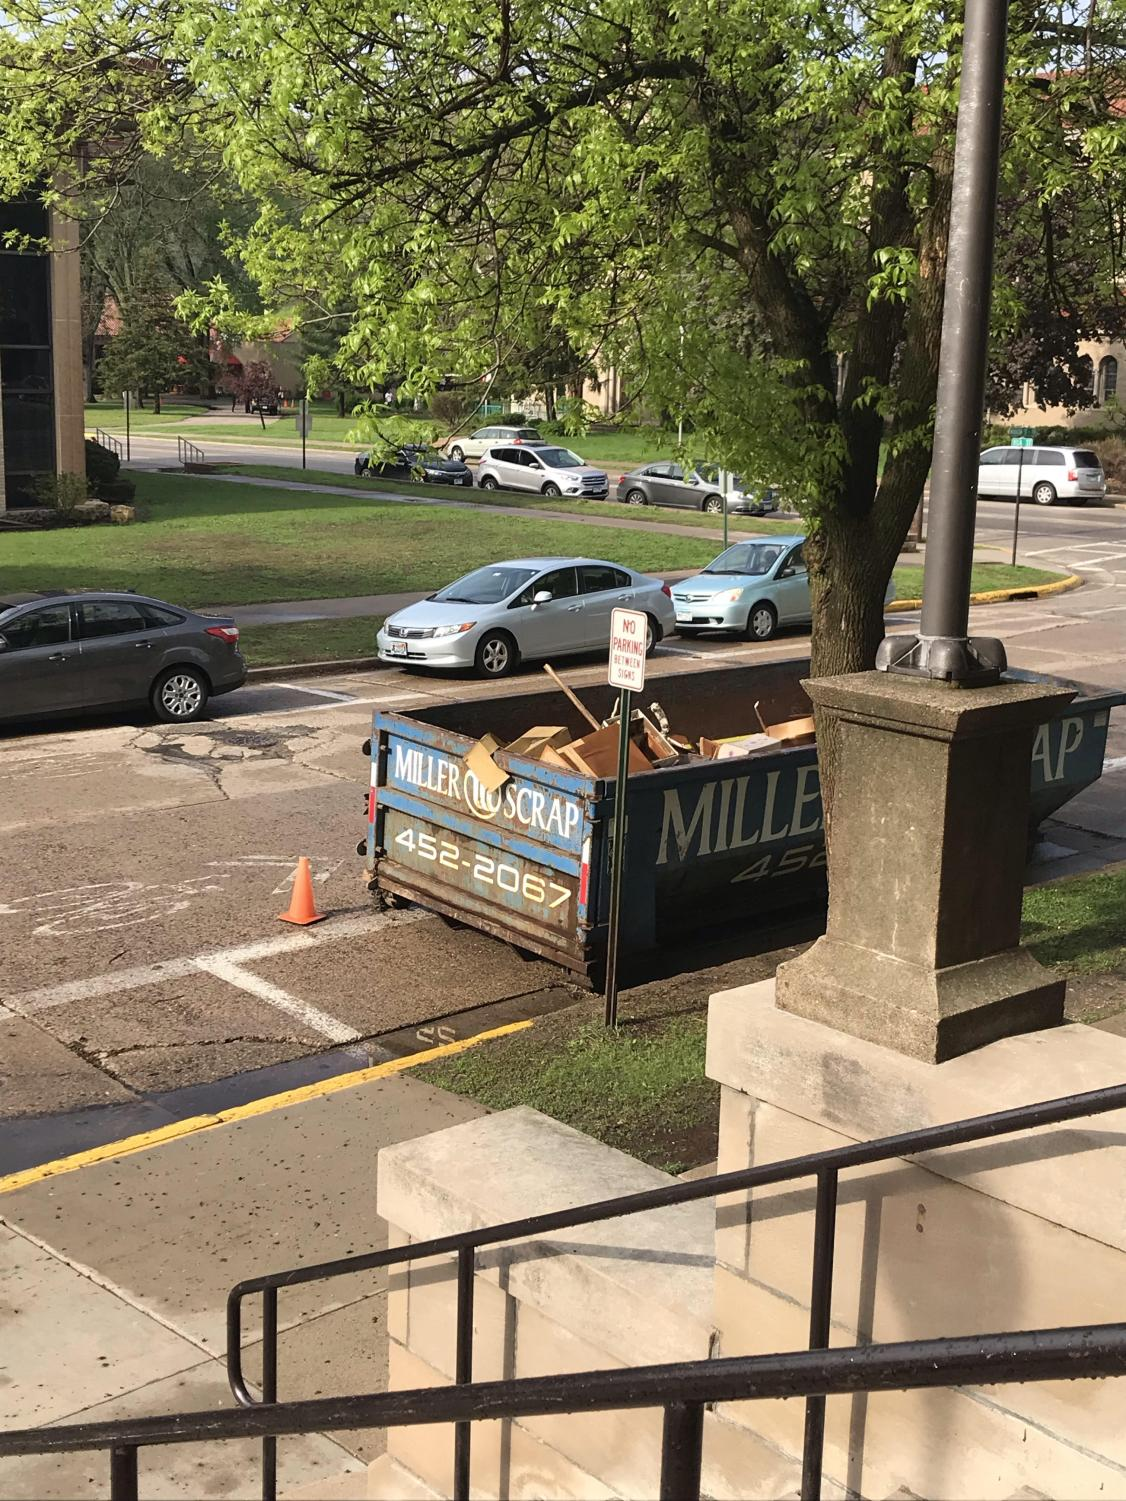 Dumpster outside the high school. Teachers making room for everyone in one building.